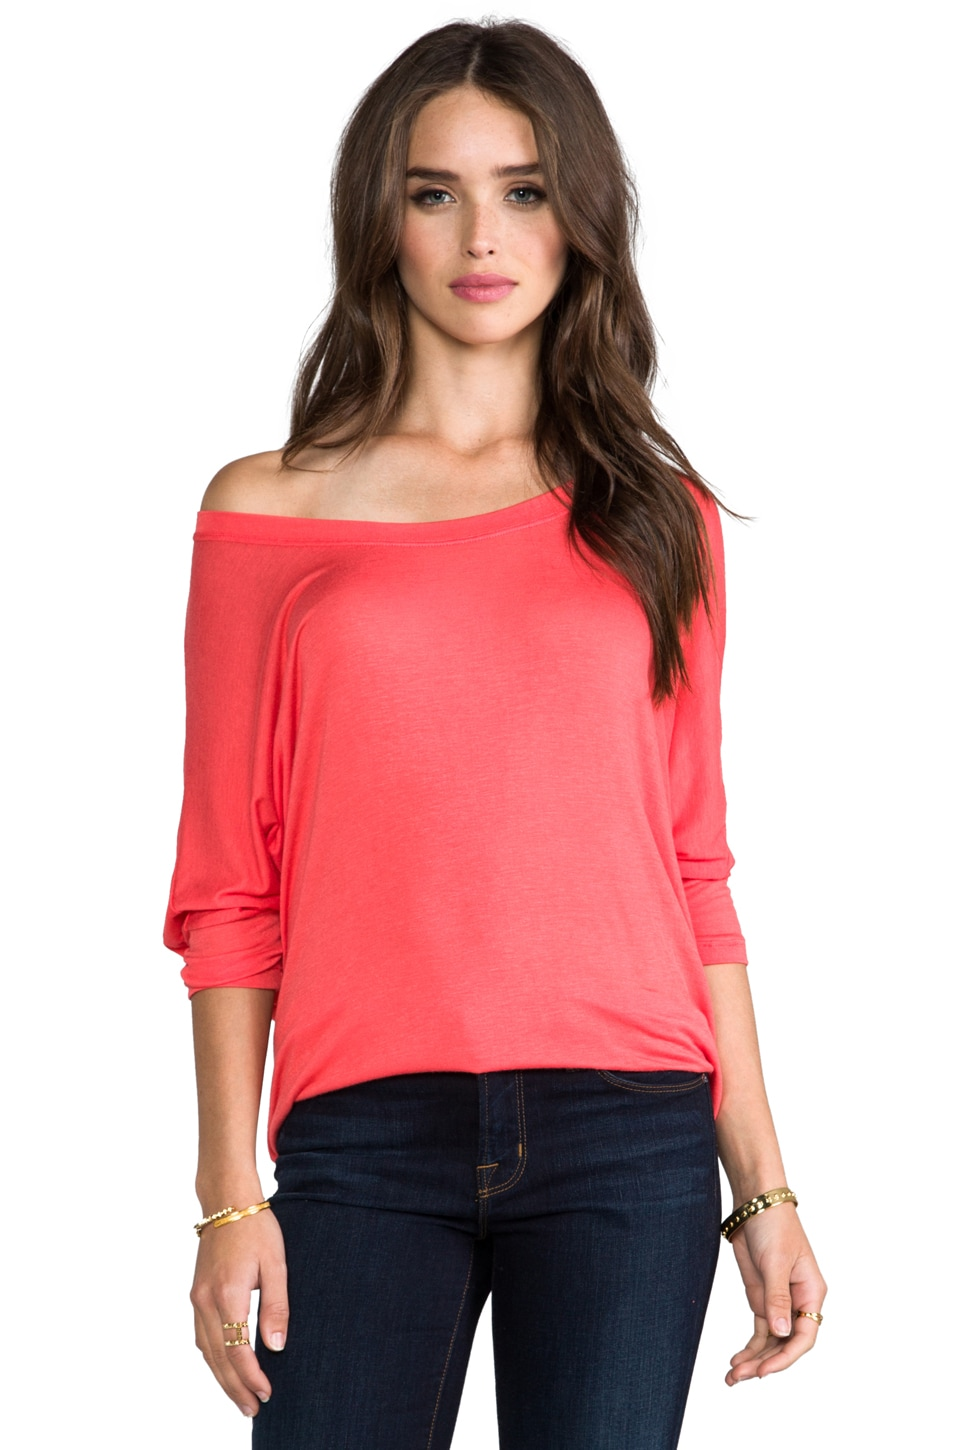 DAYDREAMER Dolman Tee in Coral